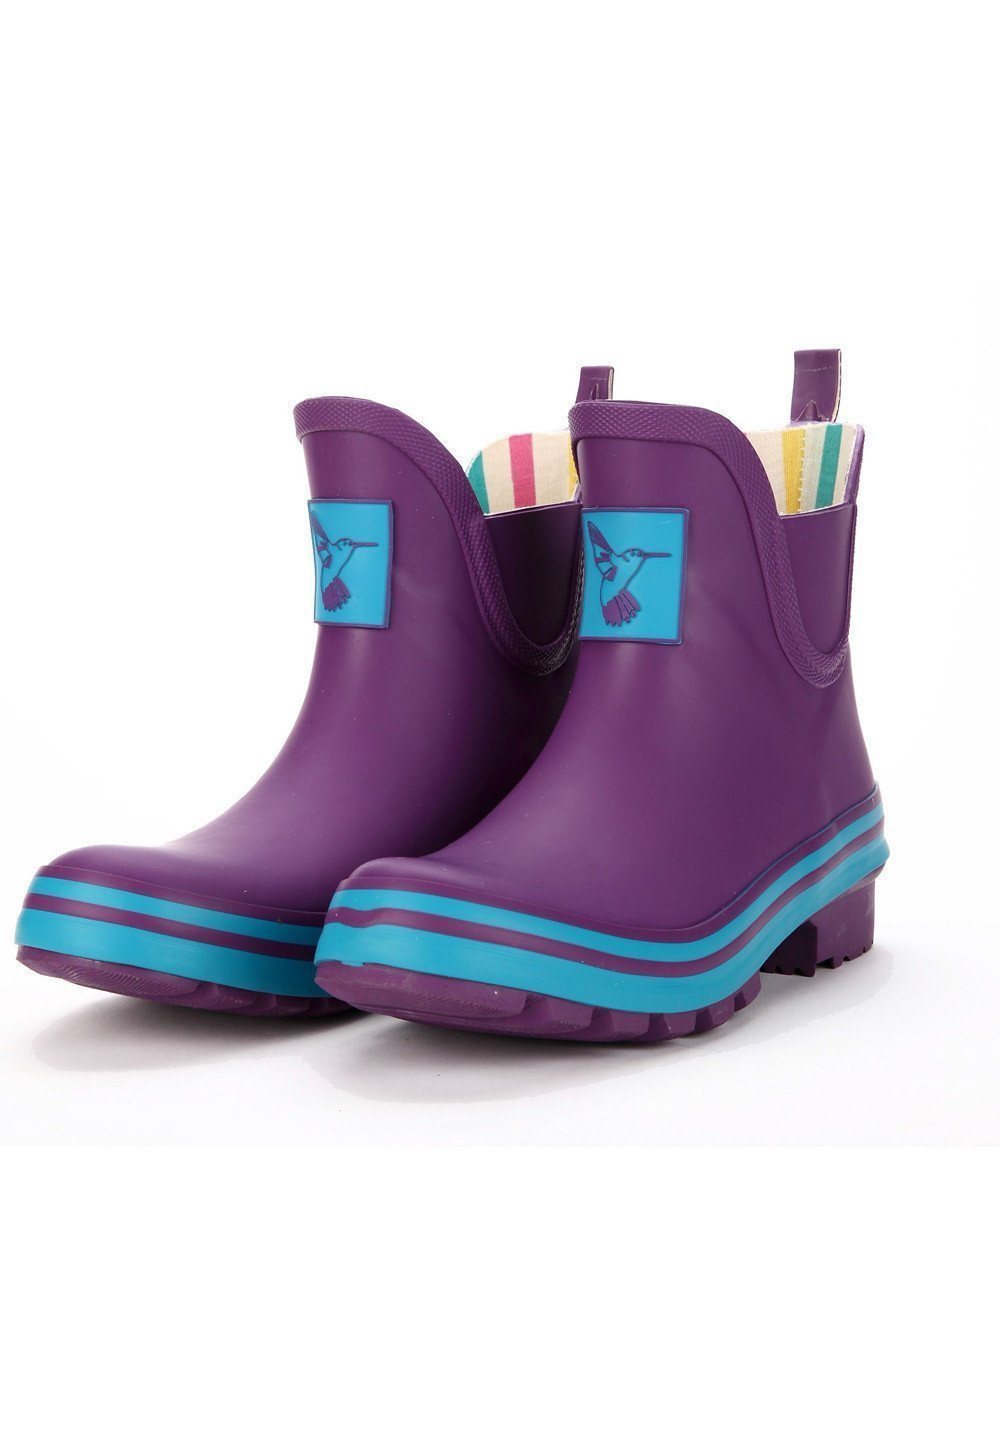 Evercreatures Eggplant Meadow Ankle Wellies - Evercreatures wellies